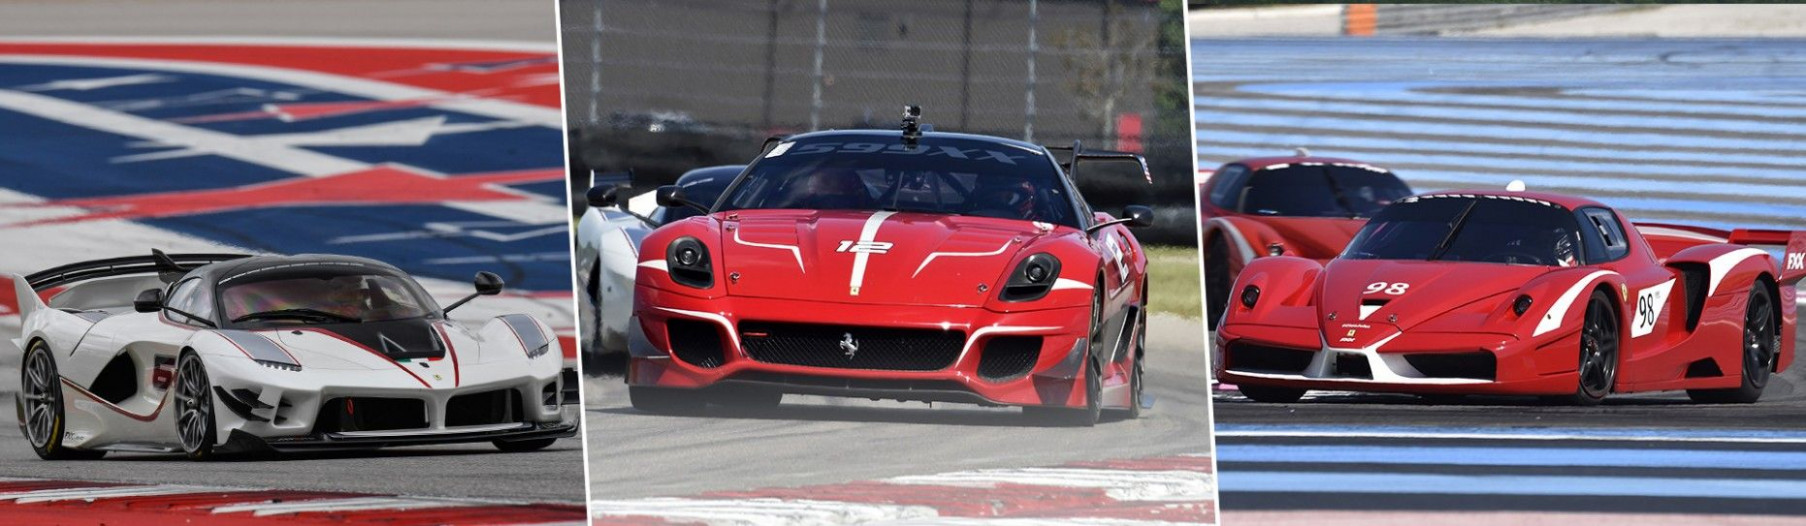 Ferrari Racing Days 7 Price And Review - ferrari racing days ...